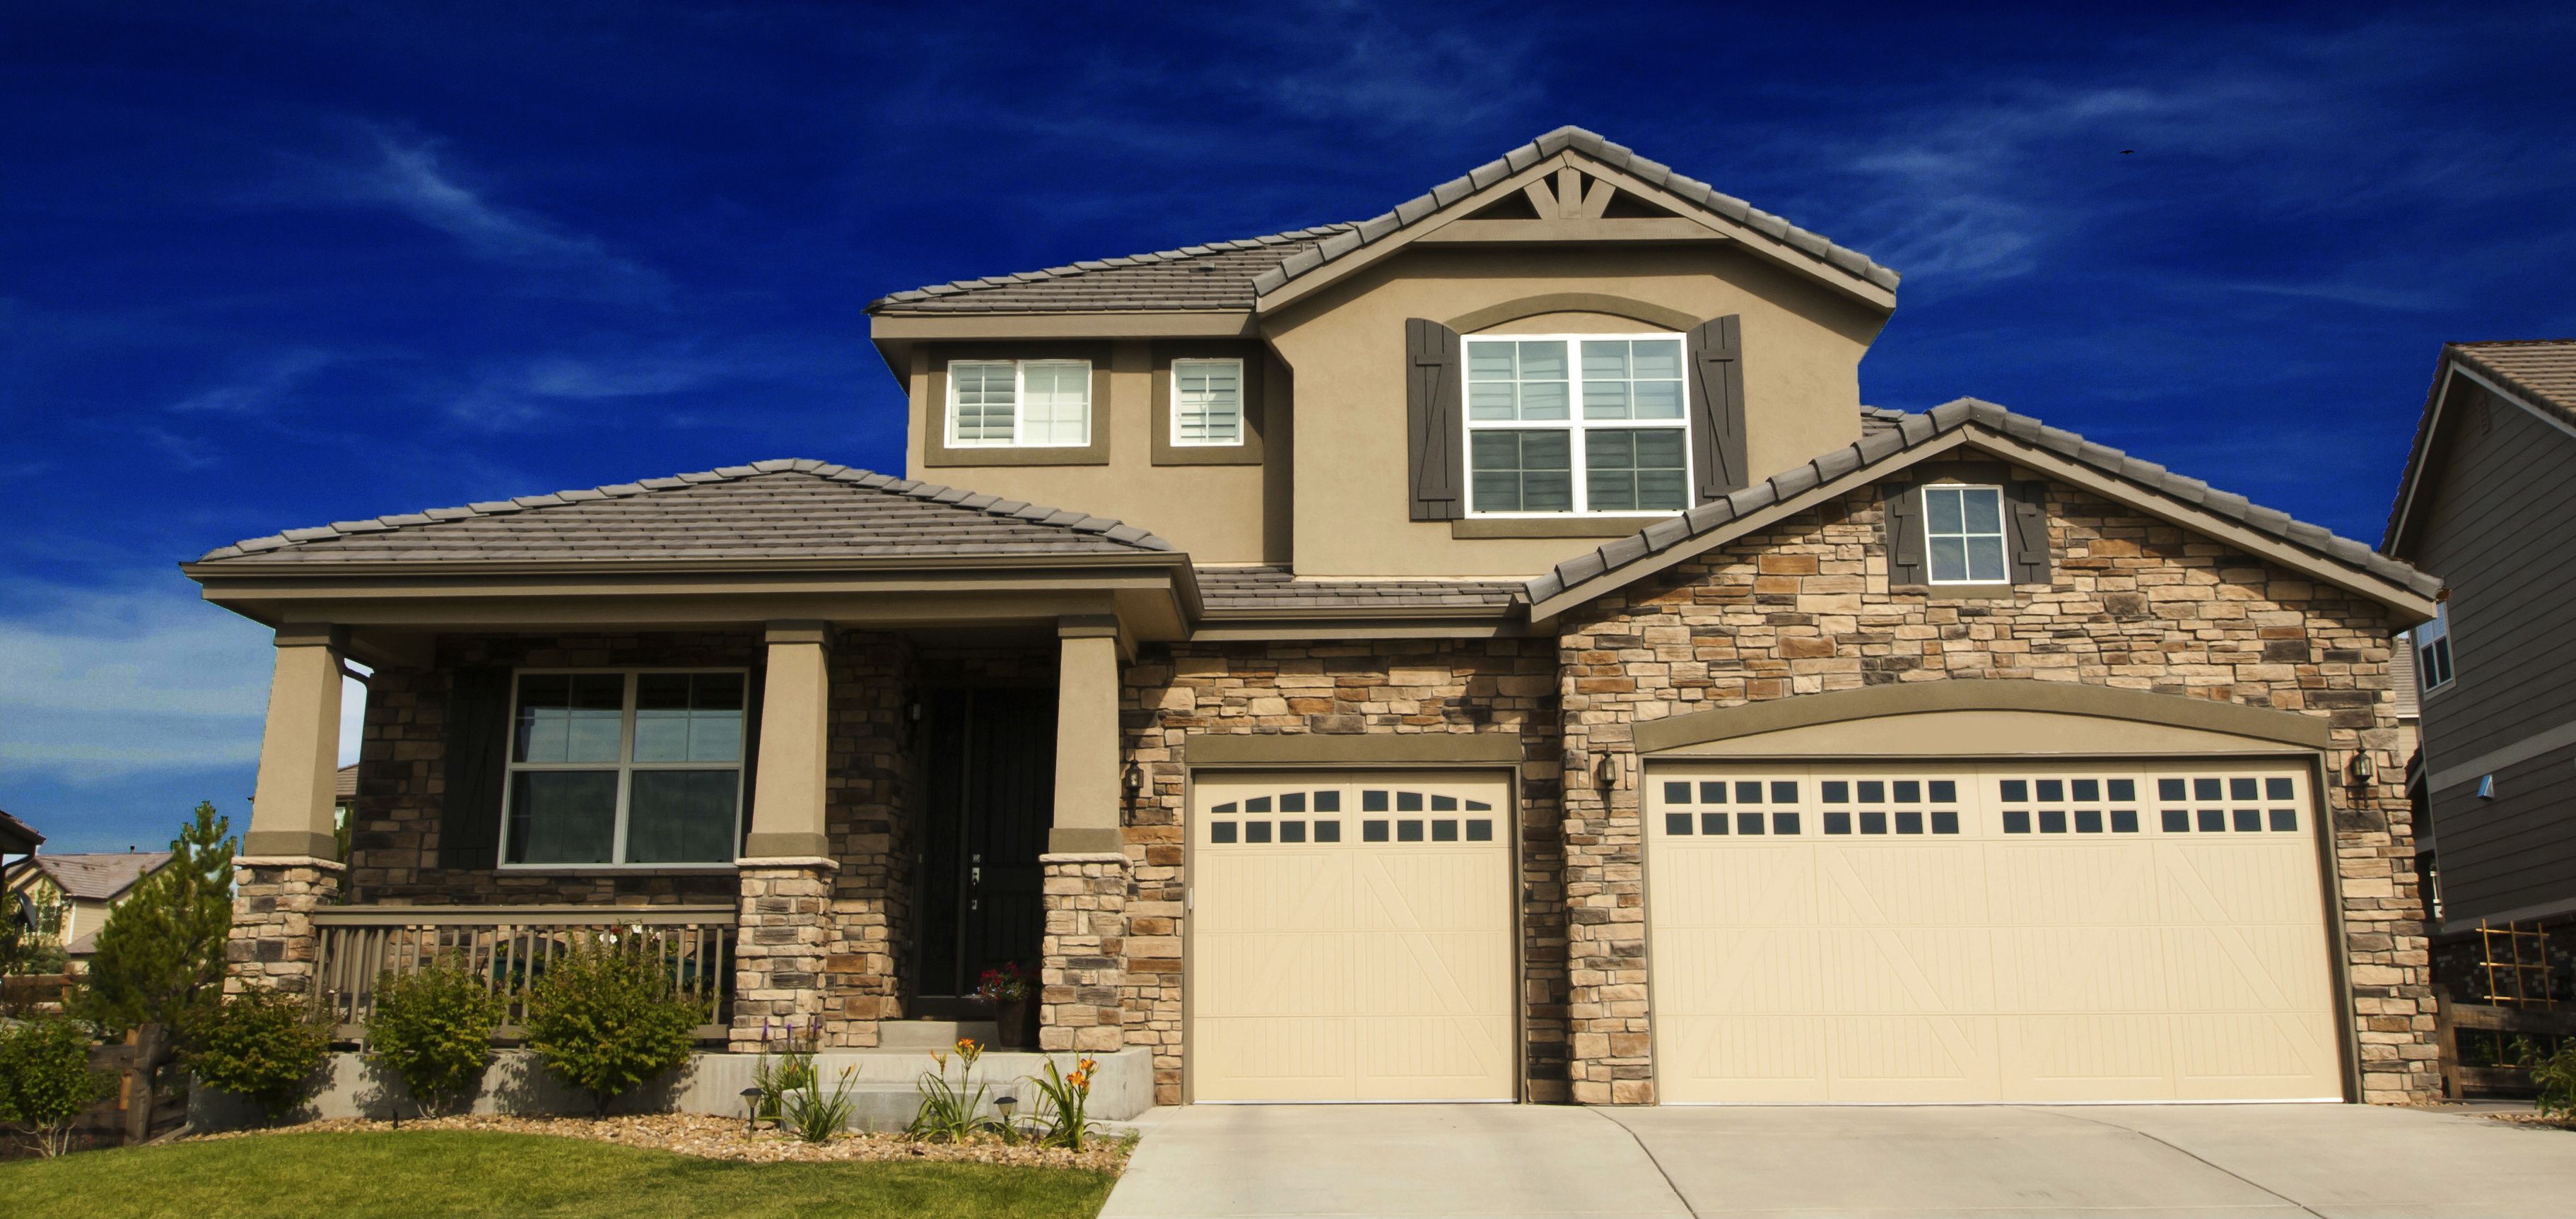 Doors 2 fix garage door service and repair located in for Garage door service fort collins